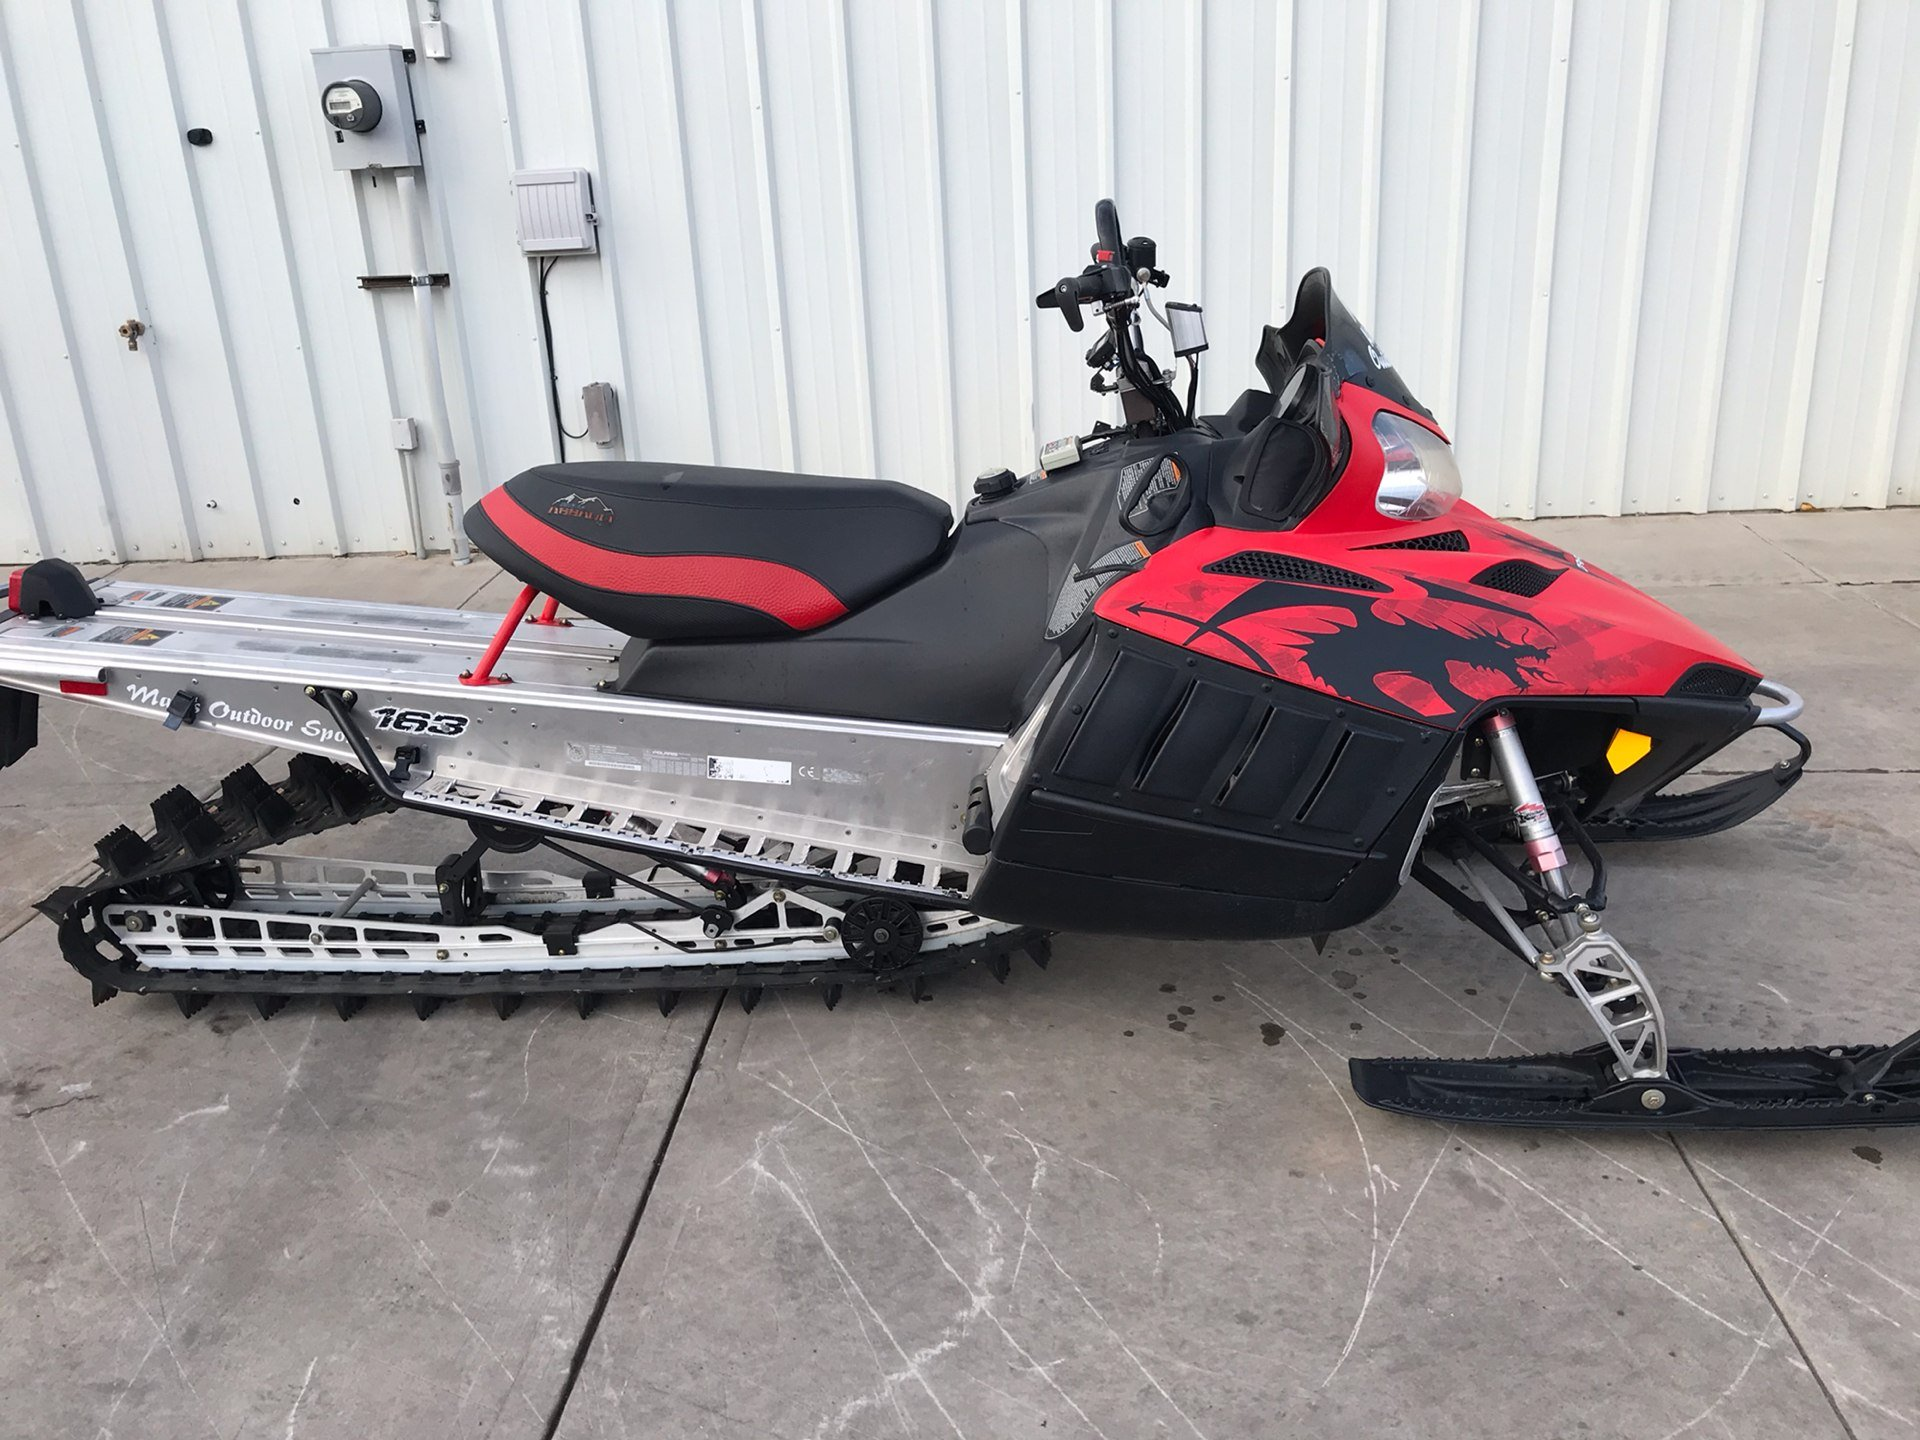 2010 Polaris 800 Dragon RMK 163 in Alamosa, Colorado - Photo 1